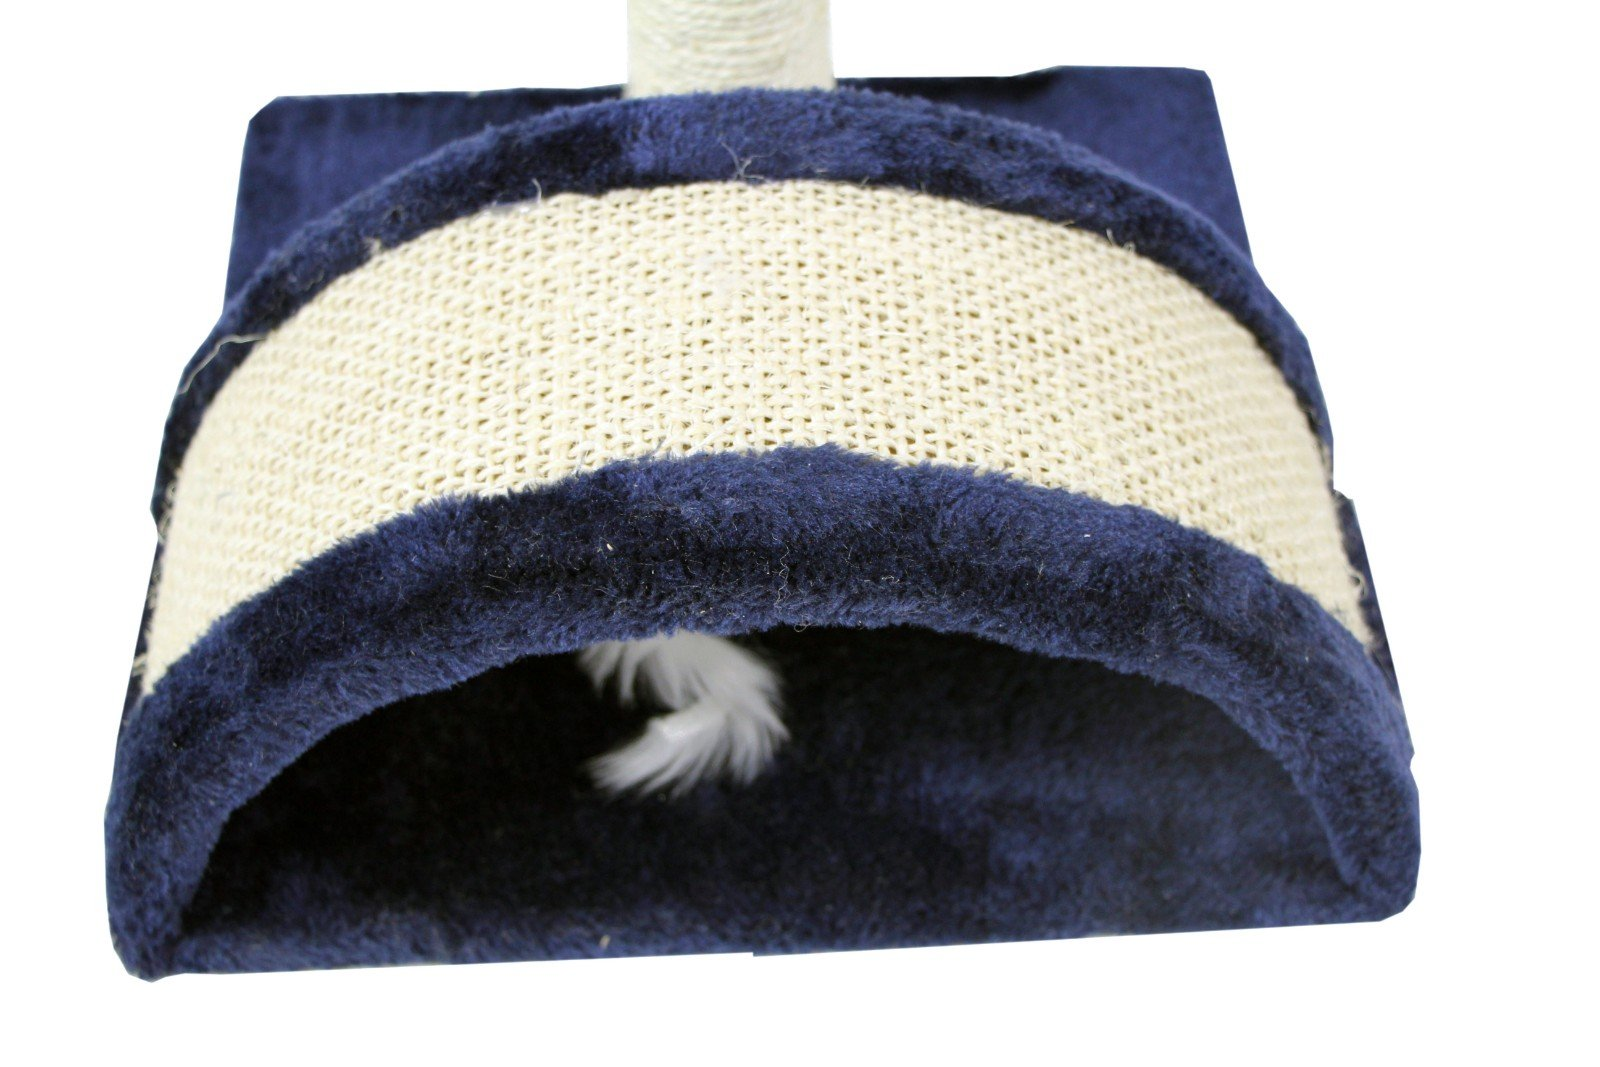 CloudWorks 15'' Small Cat Tree Sisal Scratching Post Furniture Playhouse Pet Bed Kitten Toy Cat Tower Condo for Kittens (Navy Blue) by HIDING by CloudWorks Cat (Image #7)